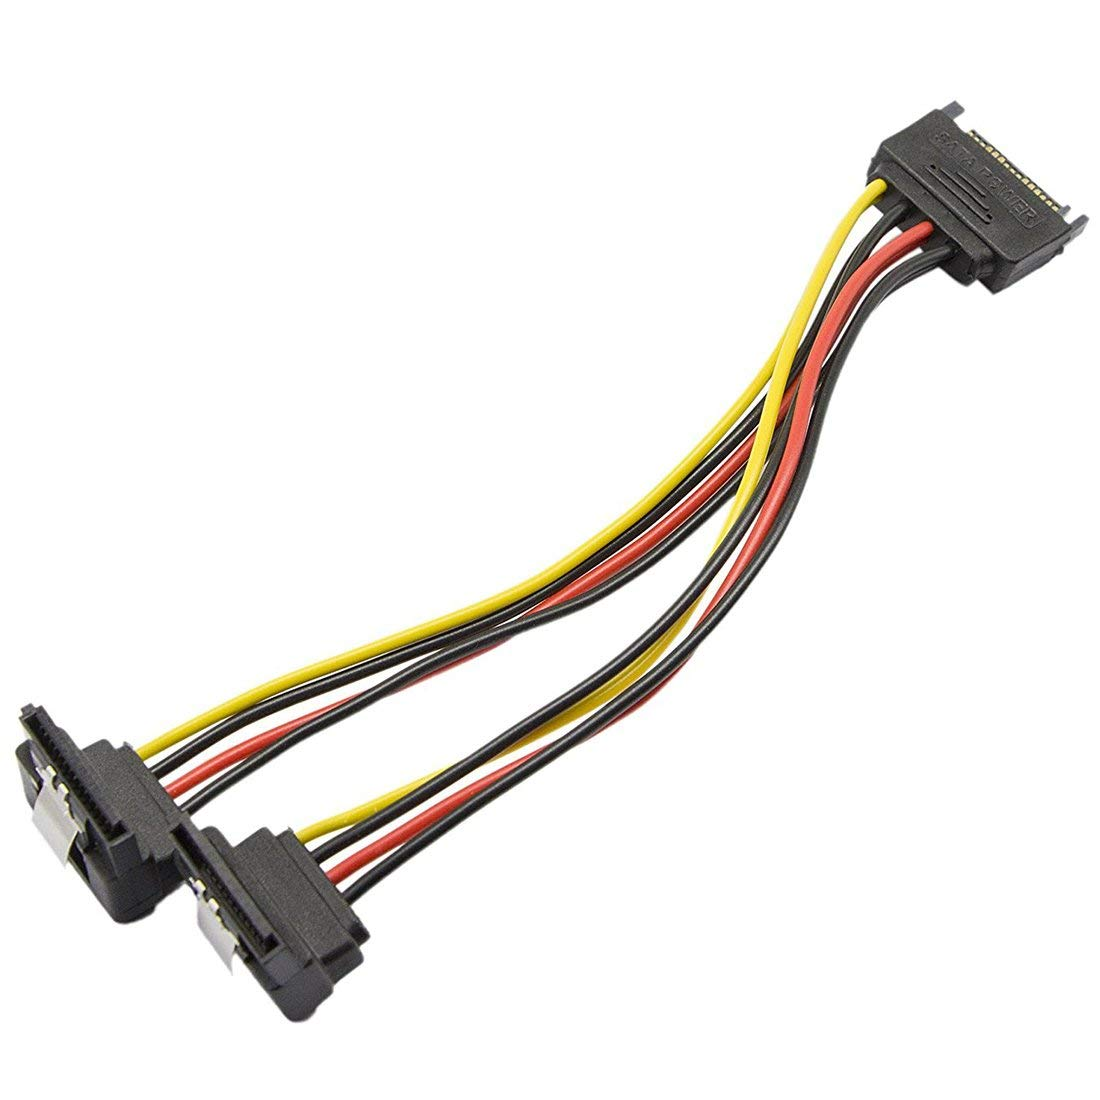 SODIAL SATA 15-Pin Male to 2 x 15-Pin 90 degrees Female SATA 15Pin 1 to 2Power Extension Y Splitter Cable Adapter -7Inch, (2 Pack)